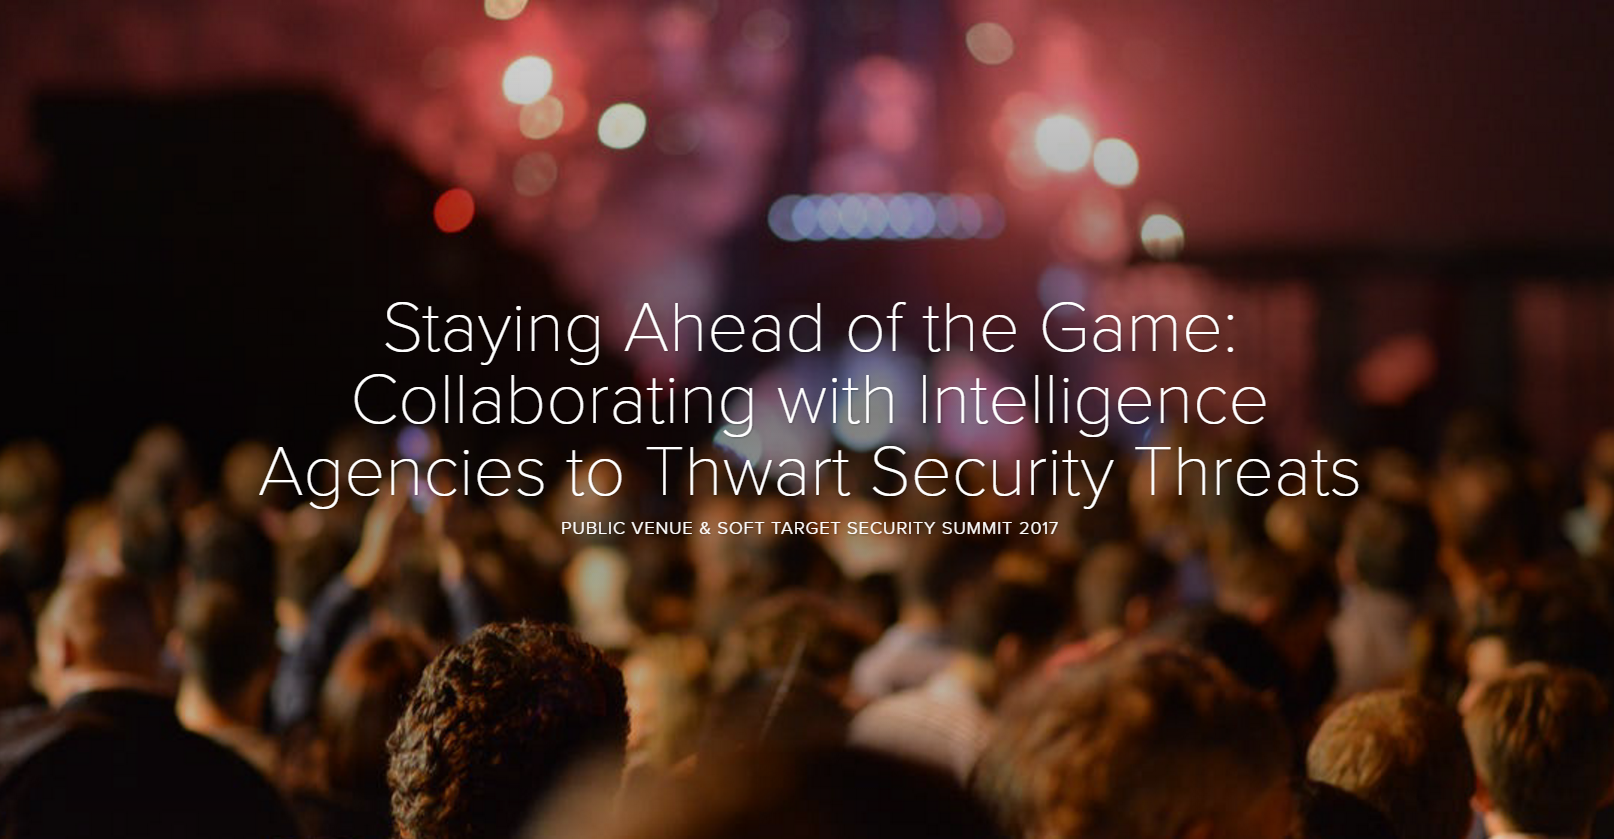 Staying Ahead of the Game: Collaborating with Intelligence Agencies to Thwart Security Threats